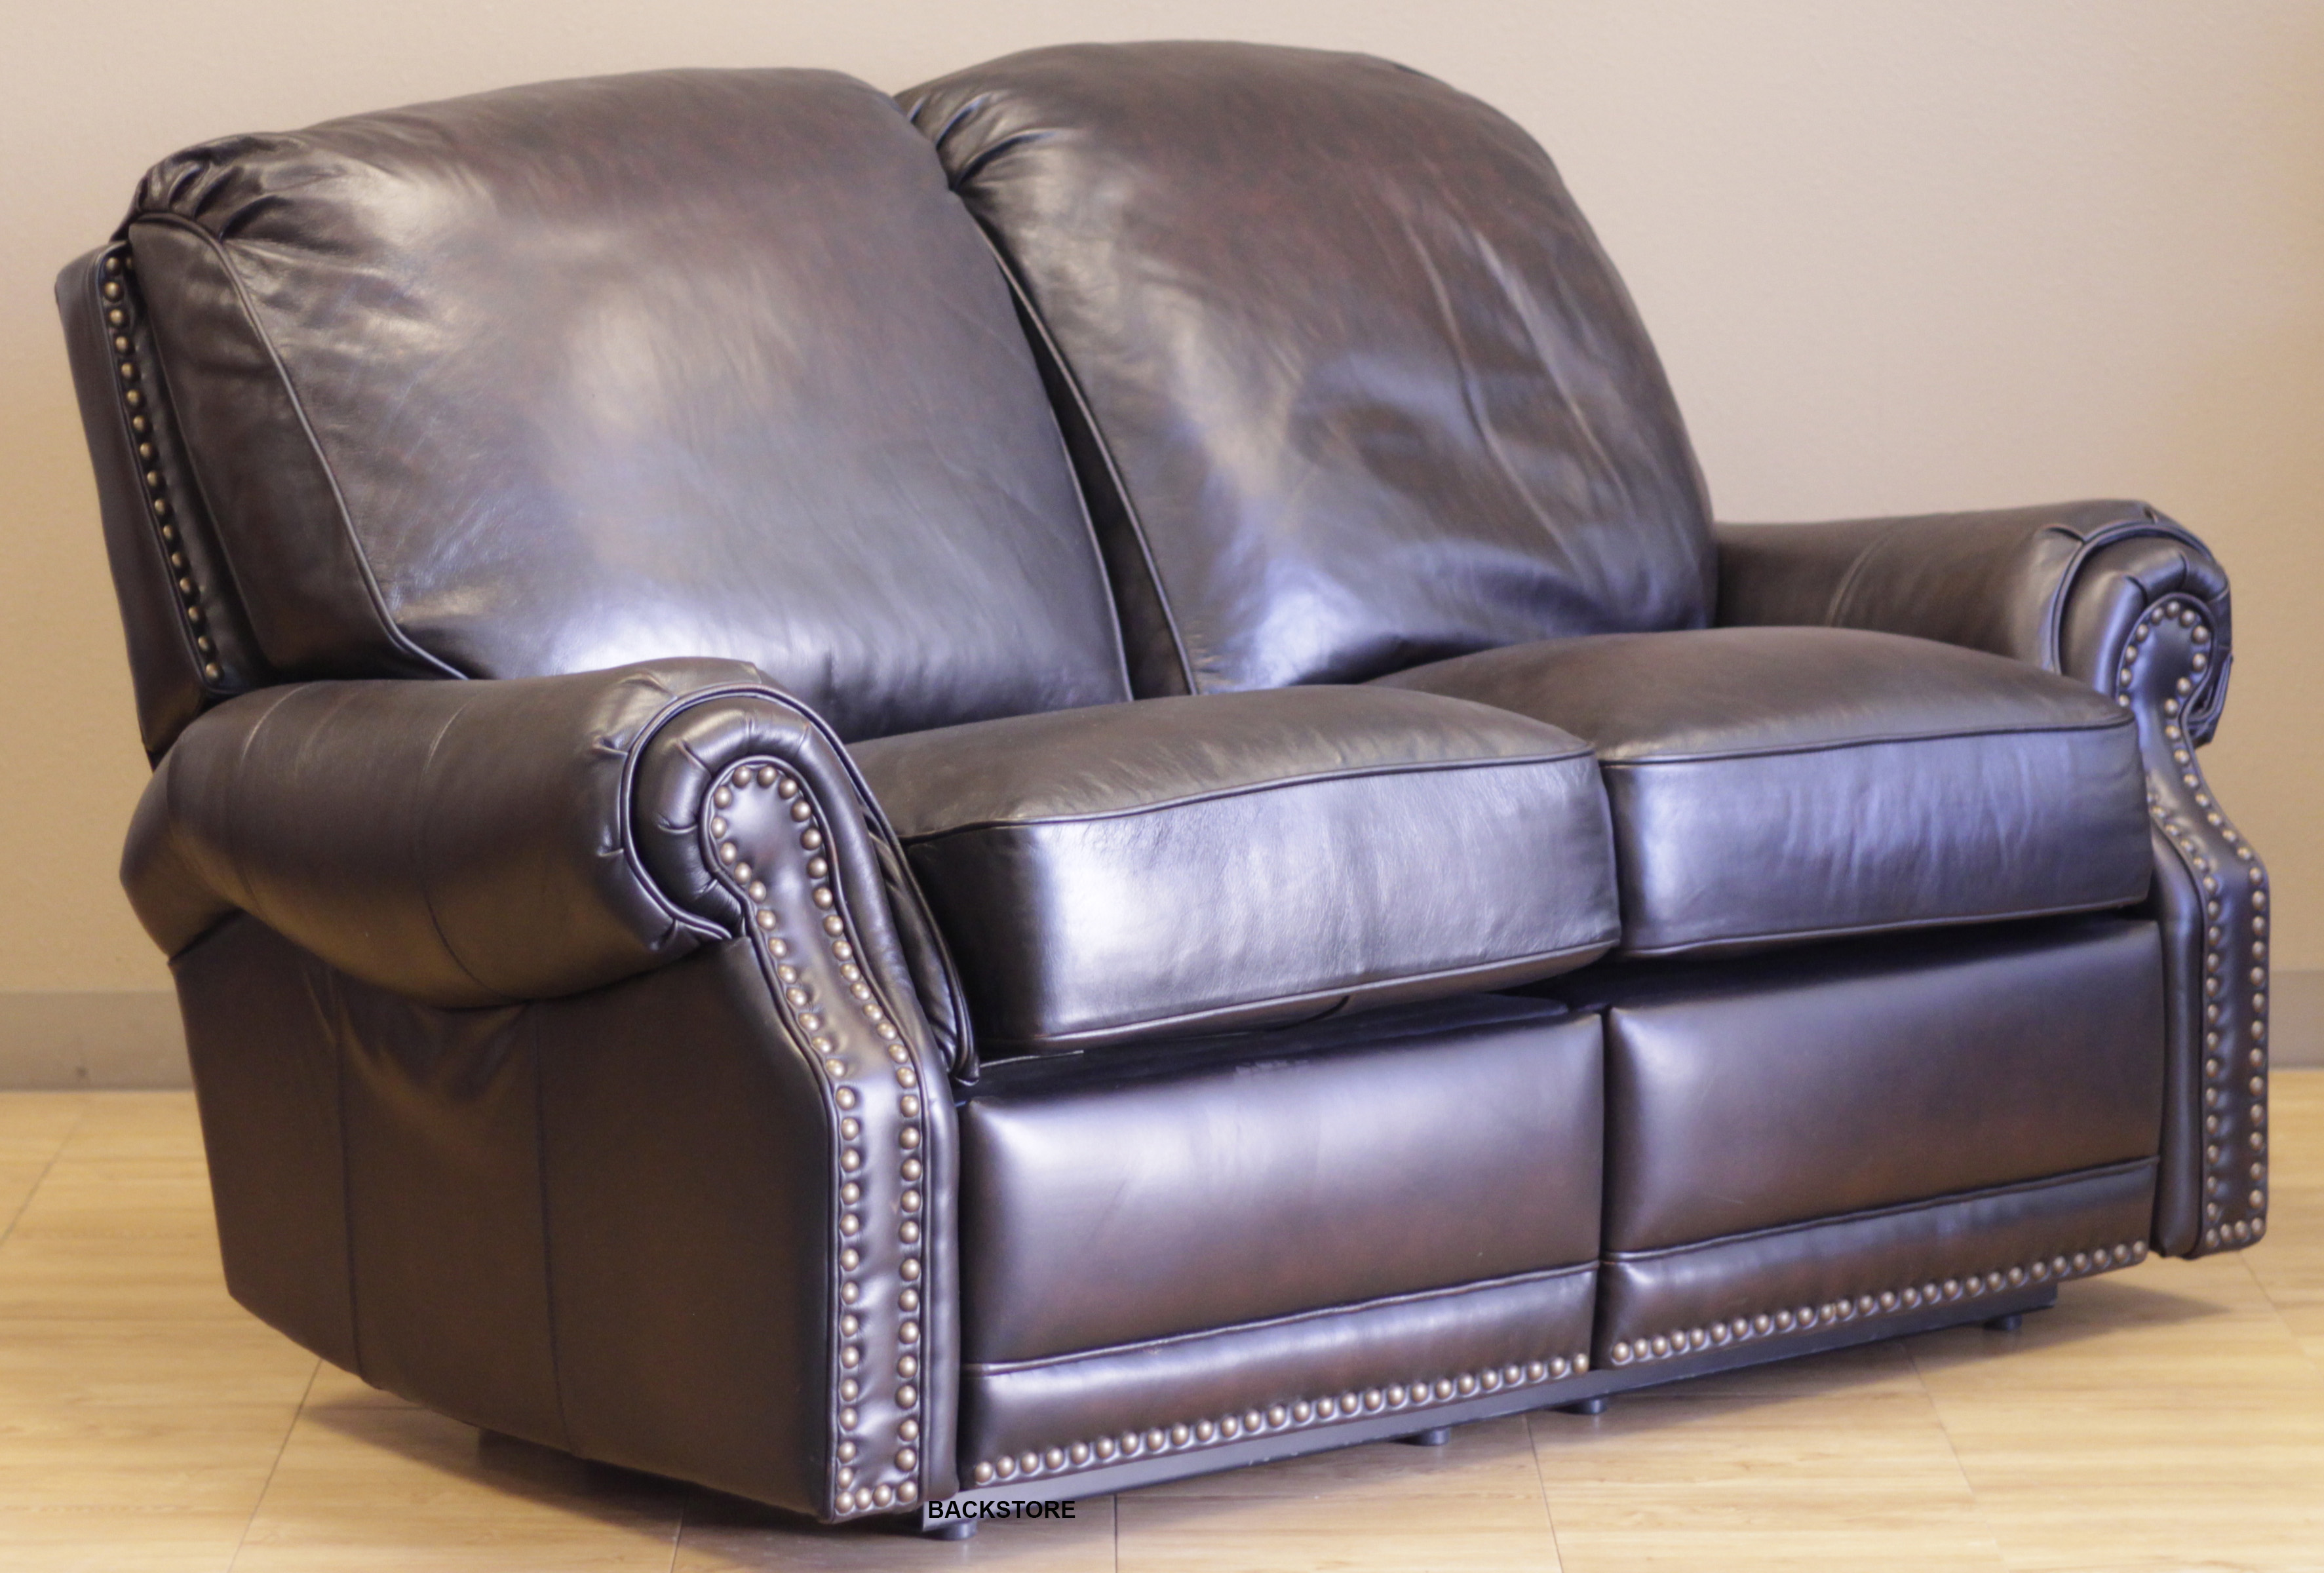 barcalounger premier ii leather 2 seat loveseat sofa. Black Bedroom Furniture Sets. Home Design Ideas